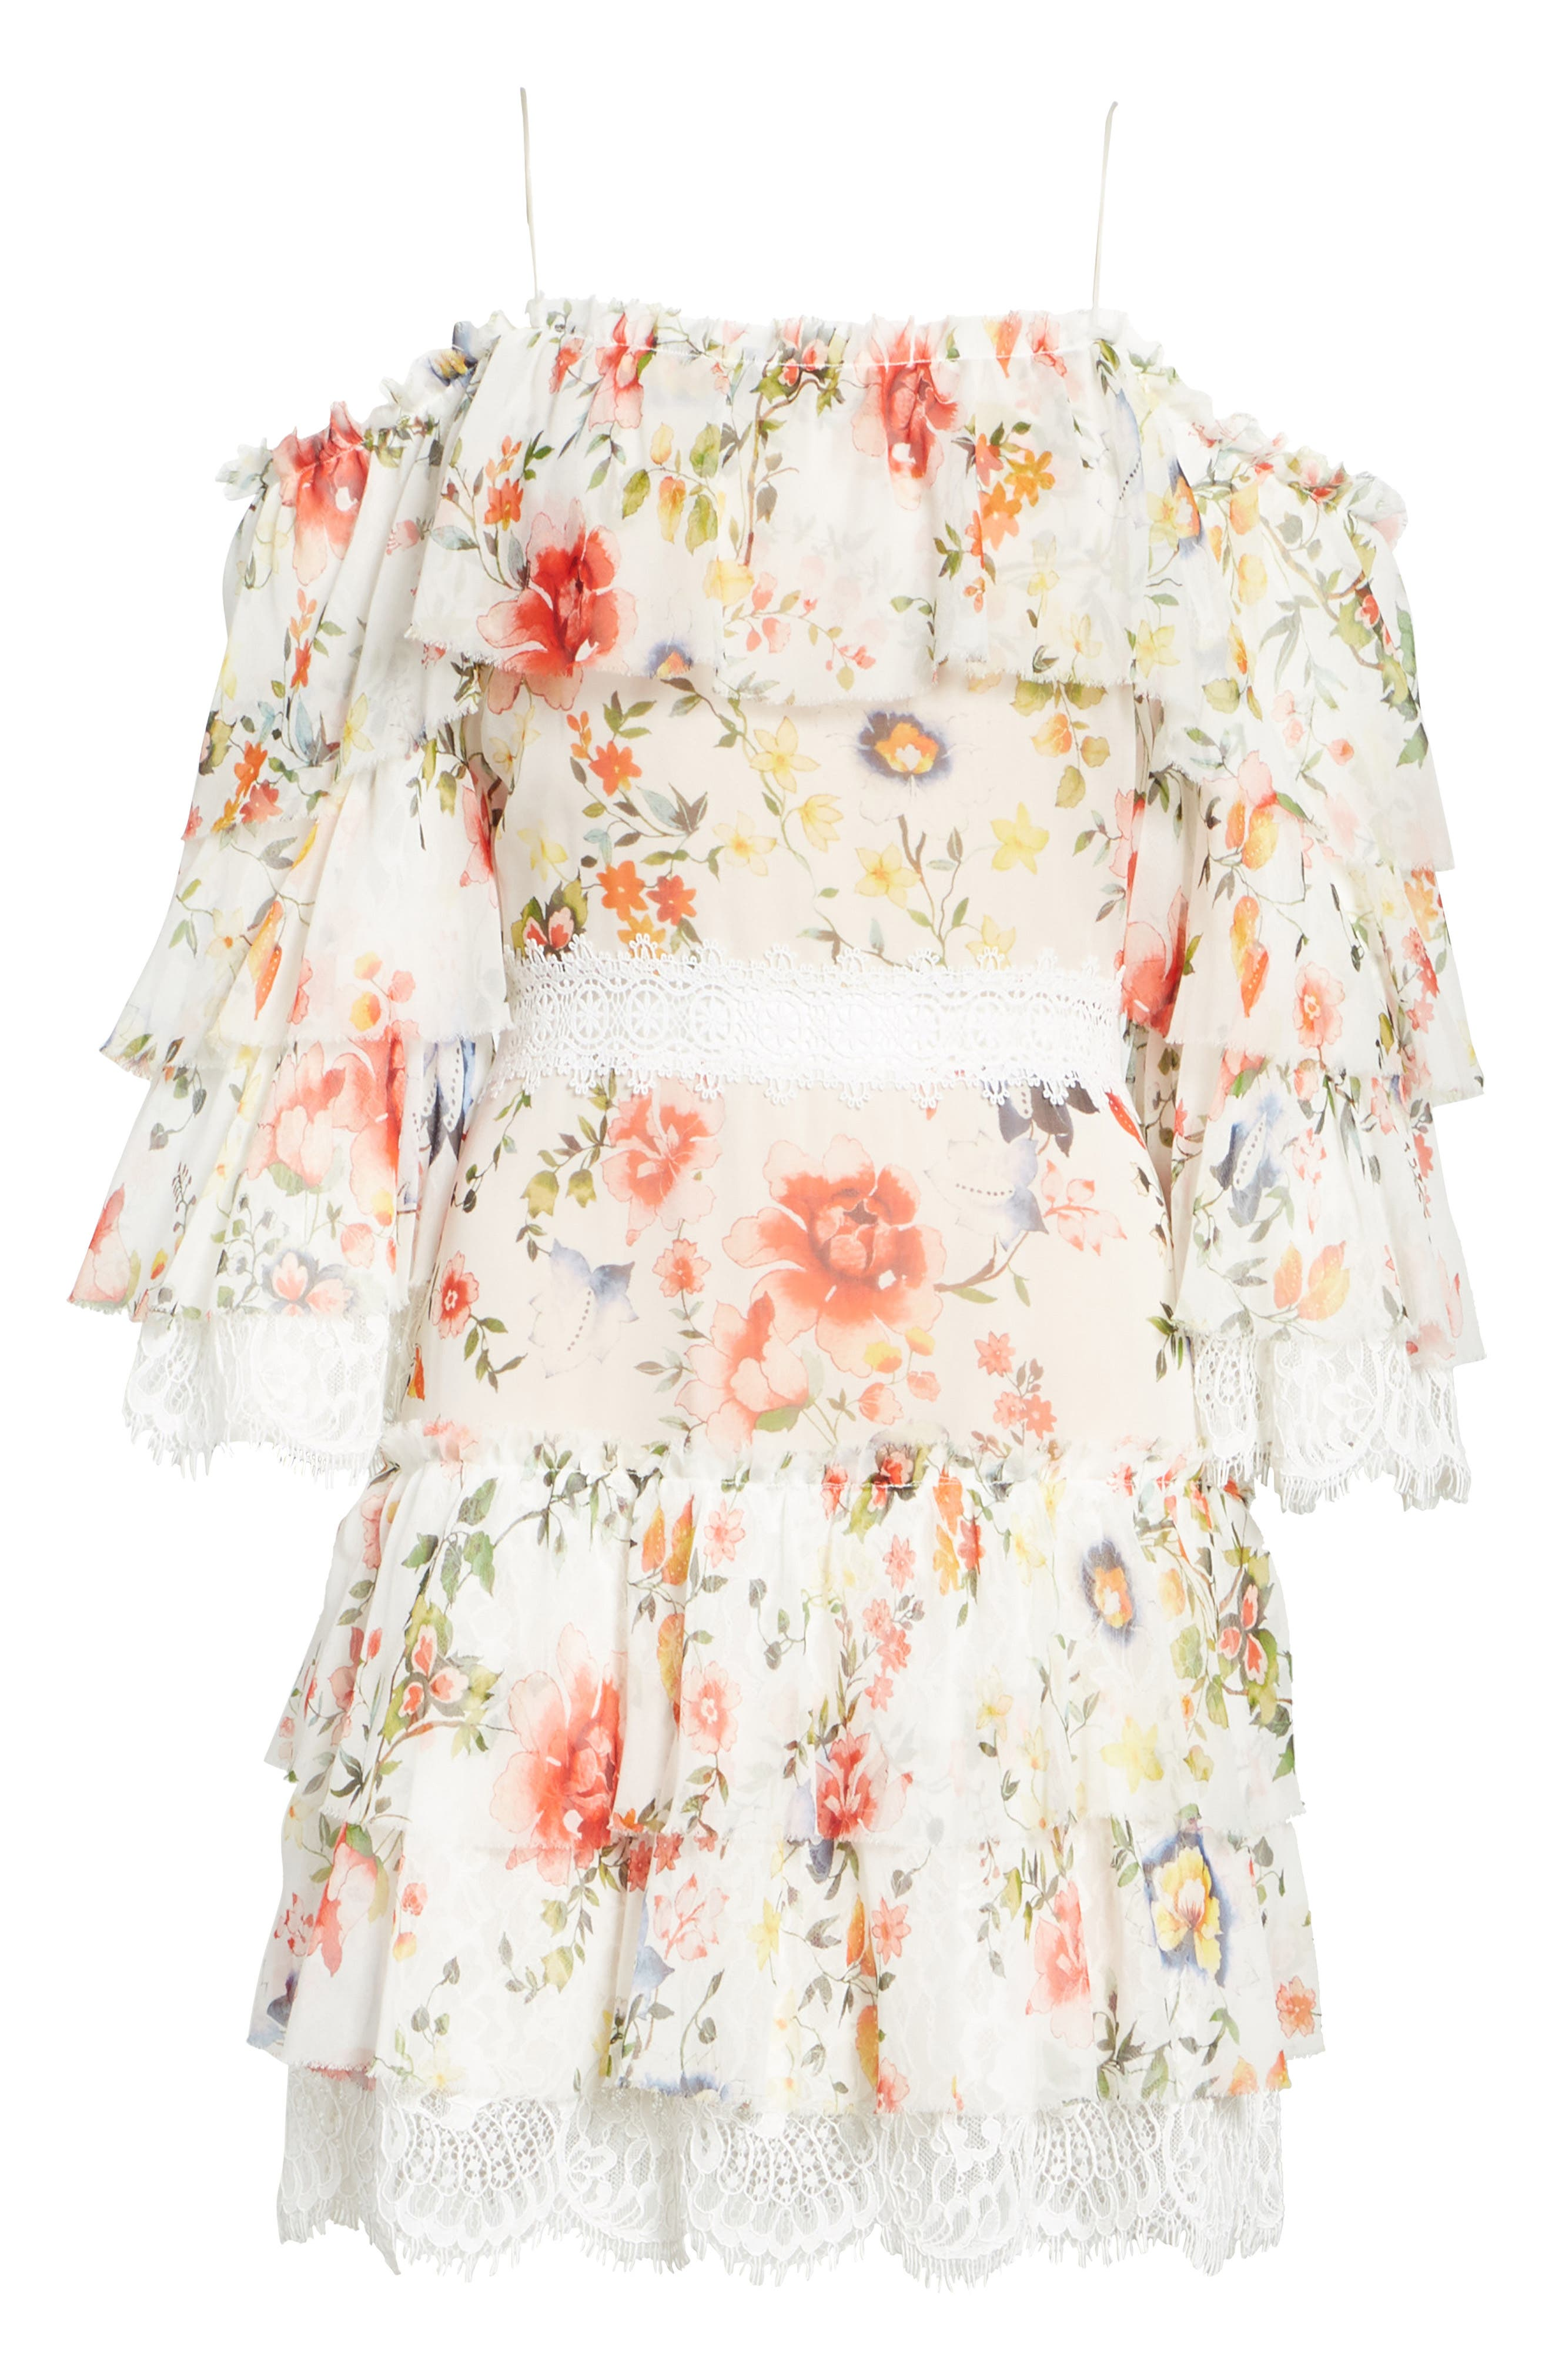 Santos Cold Shoulder Floral Silk Dress,                             Alternate thumbnail 6, color,                             Floral Soiree